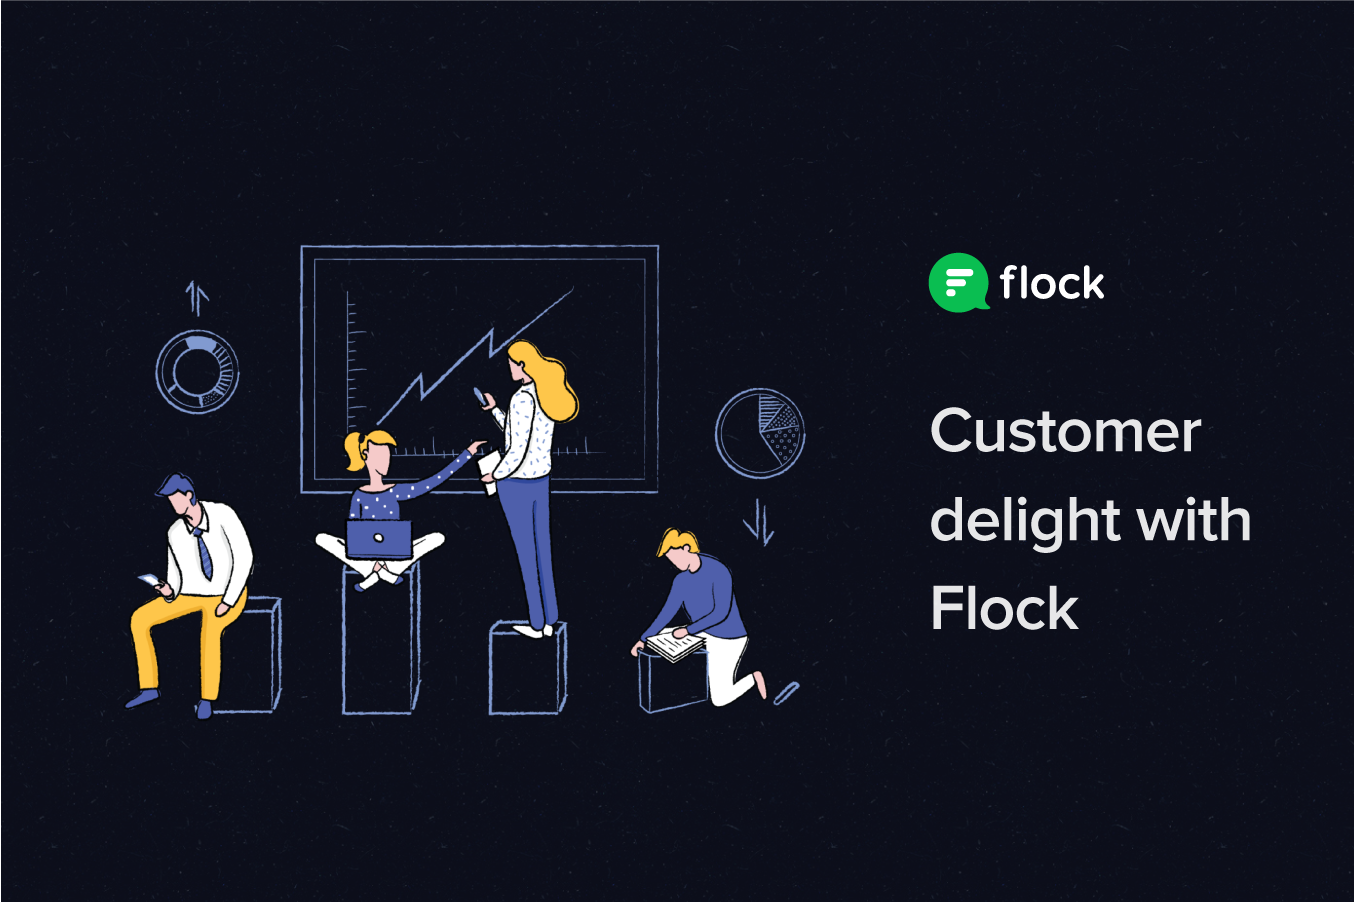 Graphic: Customer delight with Flock